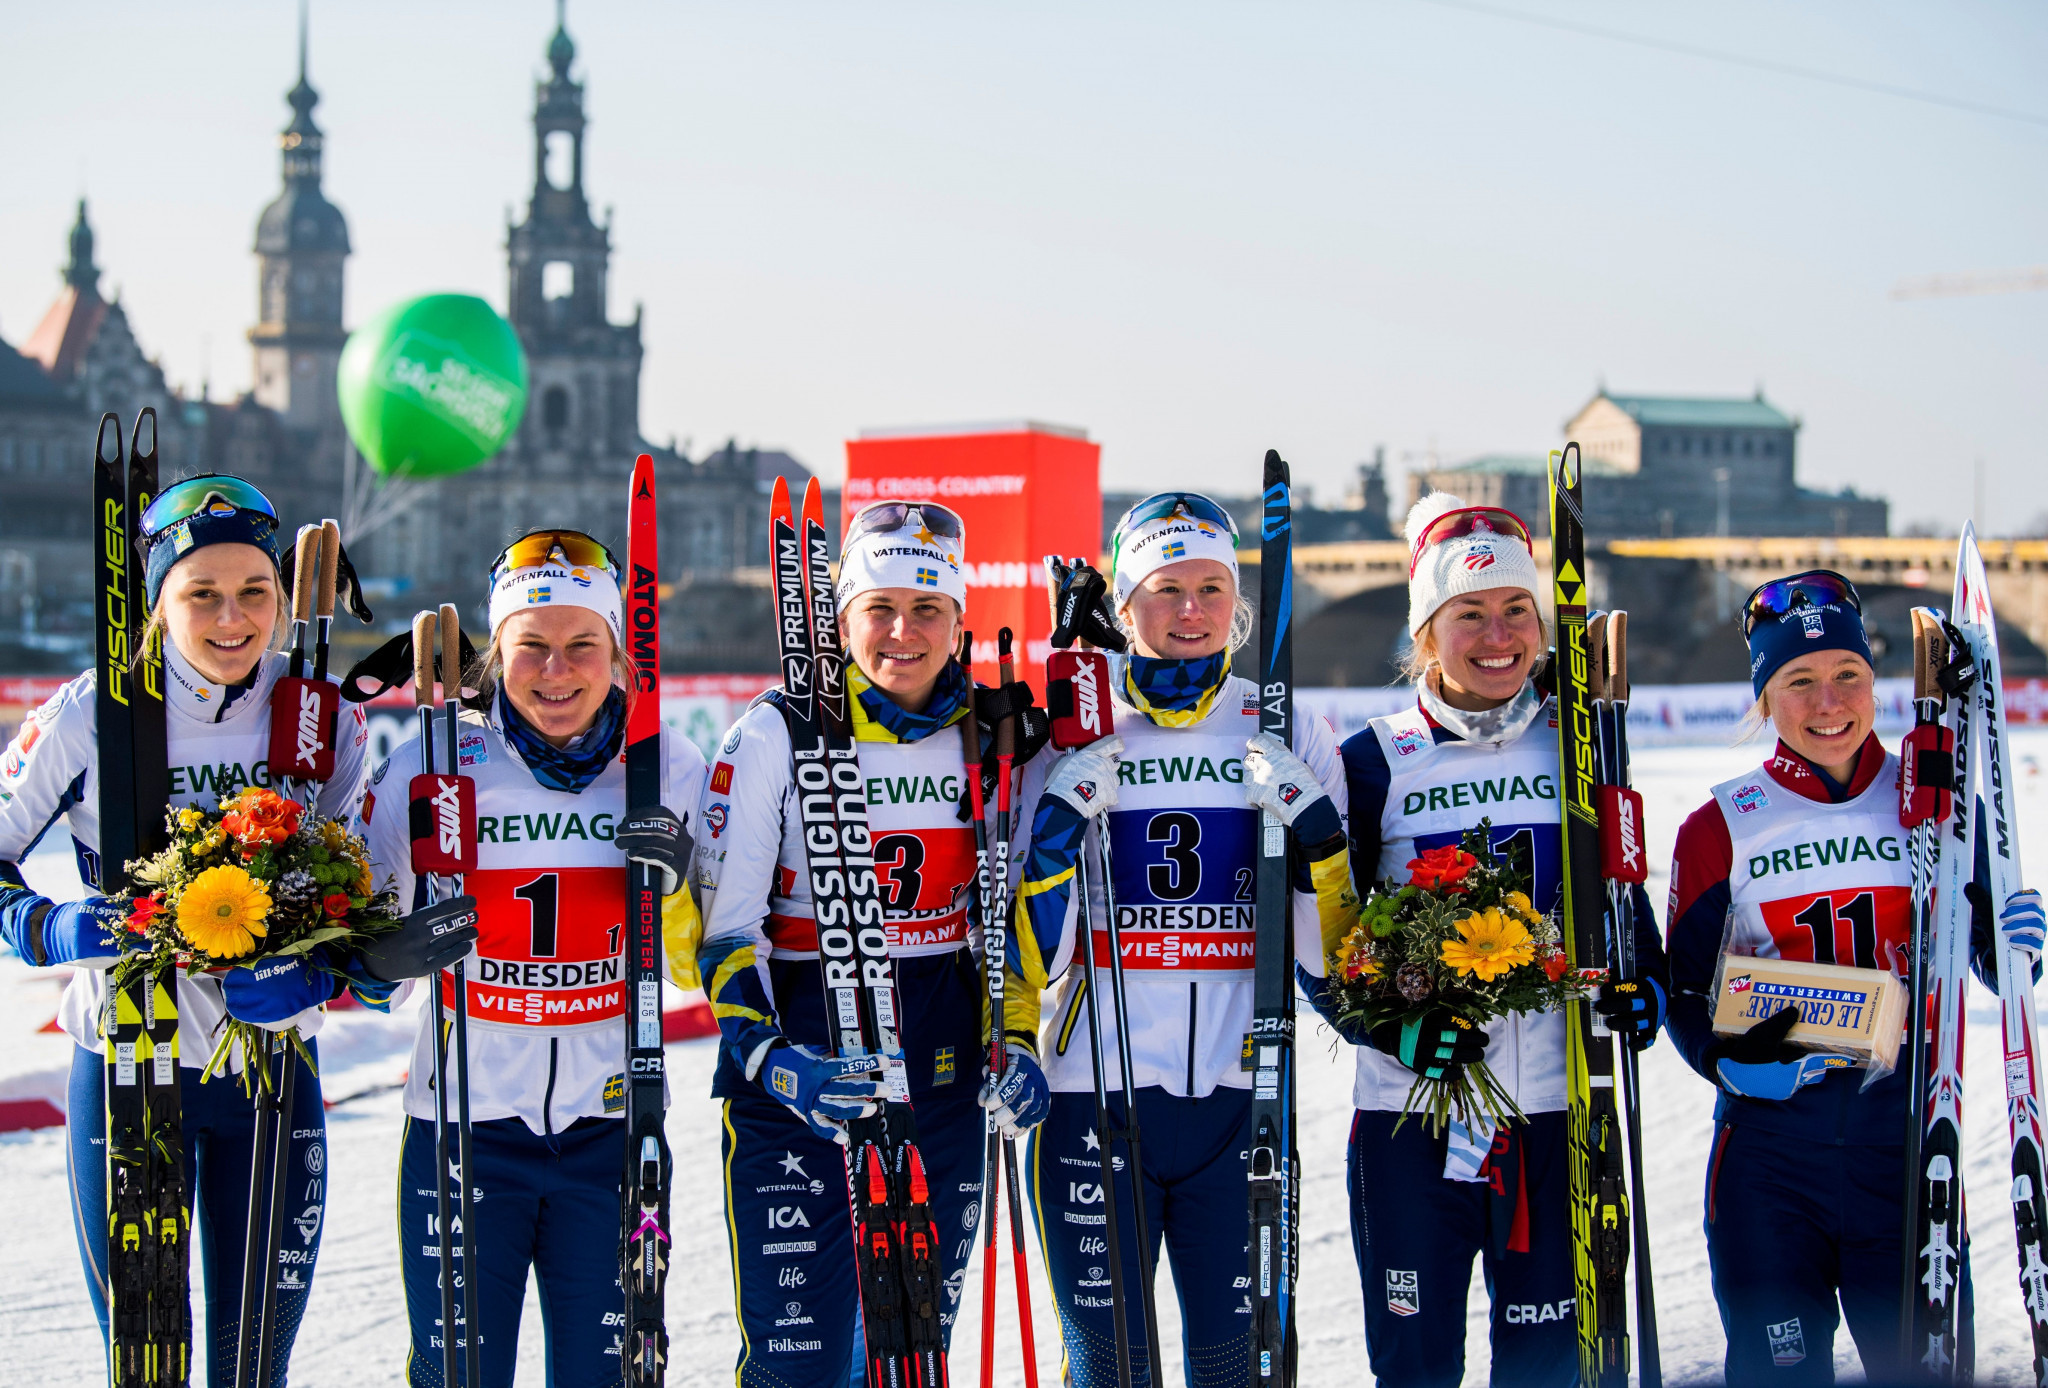 Italy and Sweden win team sprints at FIS Cross-Country World Cup in Dresden